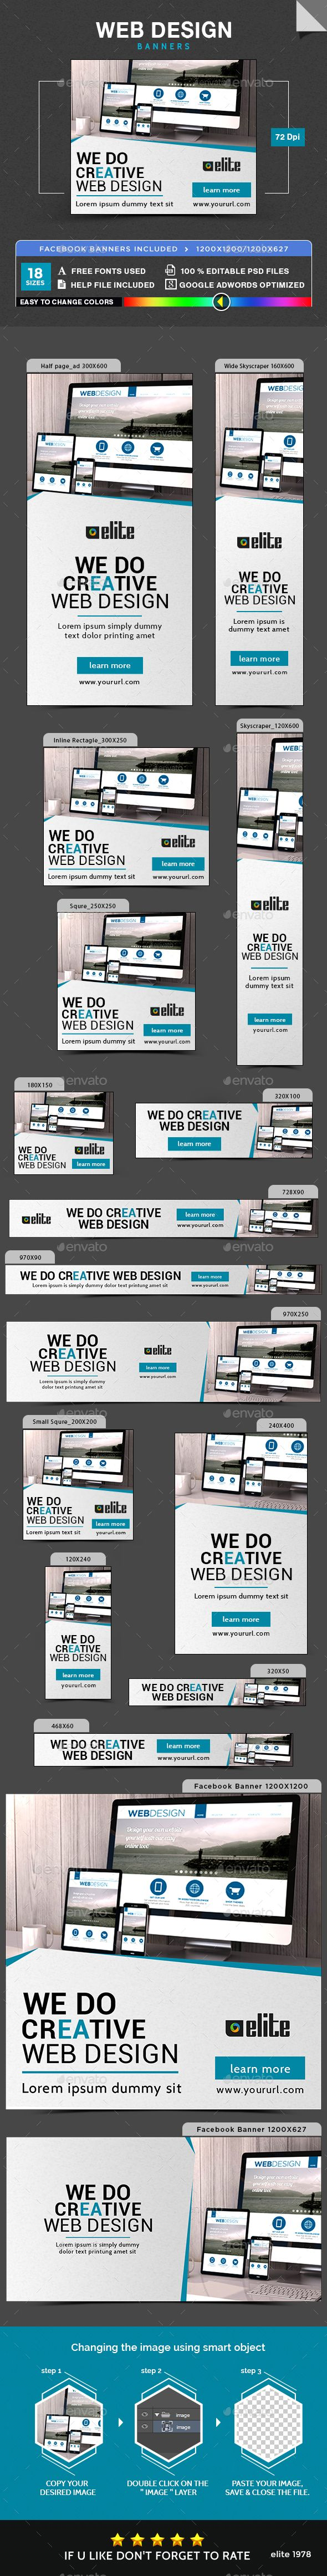 Web Design Banners | Banners, Banner template and Template